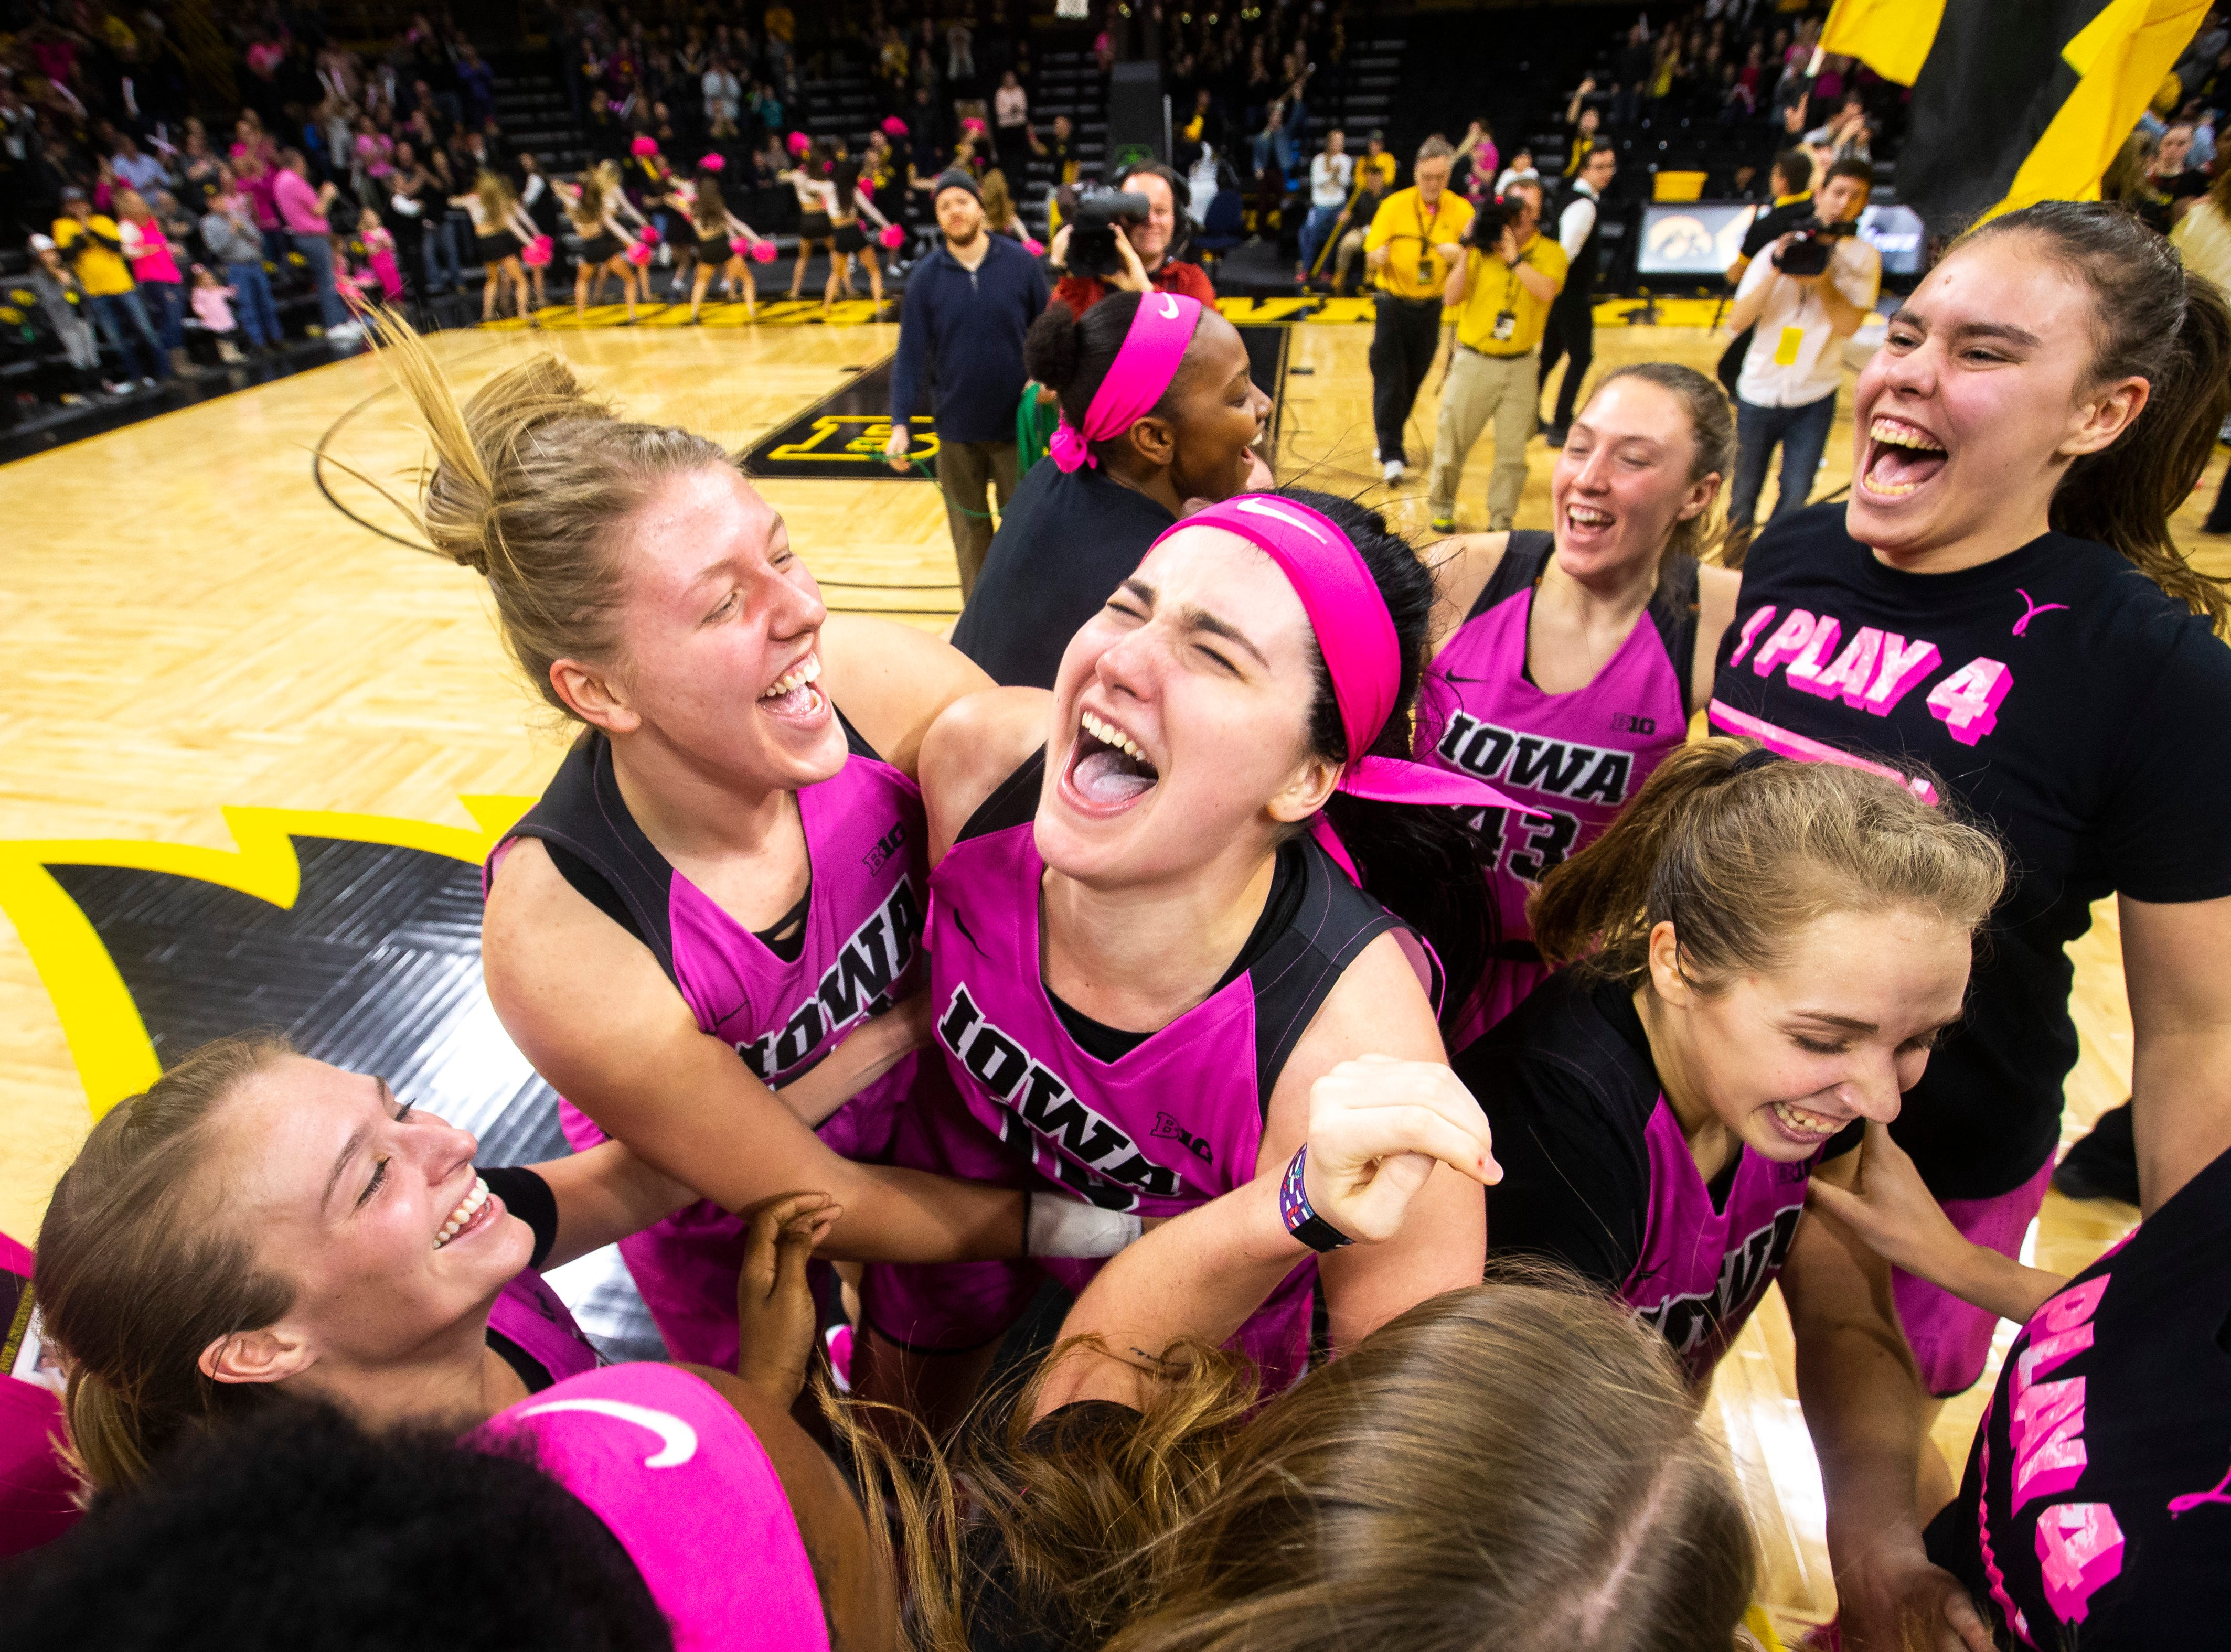 Iowa center Megan Gustafson (10) is embraced by teammates after a NCAA Big Ten Conference women's basketball game against Maryland on Sunday, Feb. 17, 2019 at Carver-Hawkeye Arena in Iowa City, Iowa. The Hawkeyes defeated the Terrapins, 86-73.